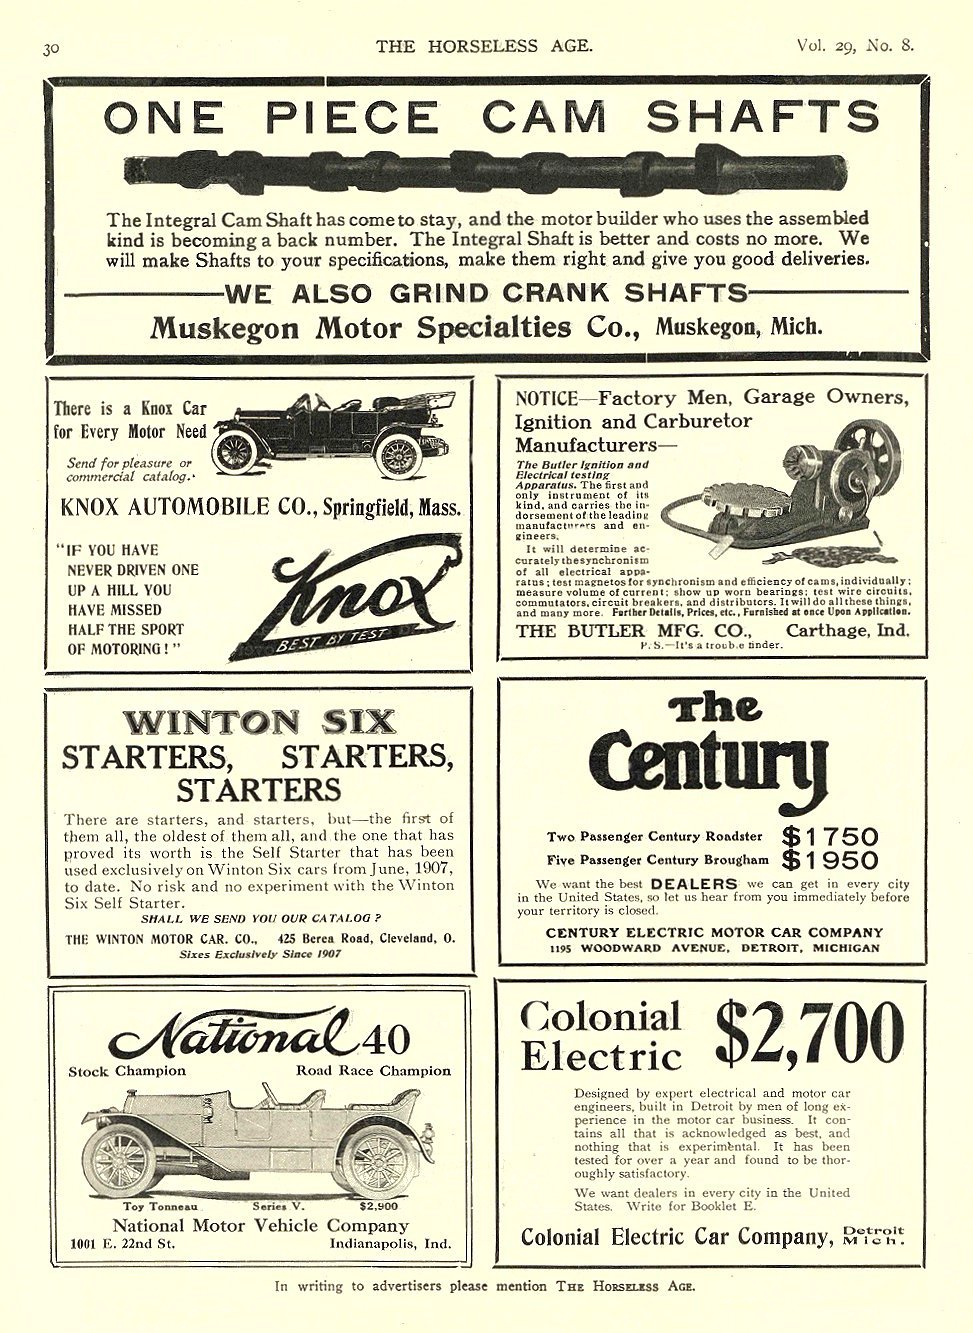 1912 2 21 COLONIAL Electric Colonial Electric $2,700 Colonial Electric Car Company Detroit, MICH THE HORSELESS AGE February 21, 1912 9″x12″ page 30